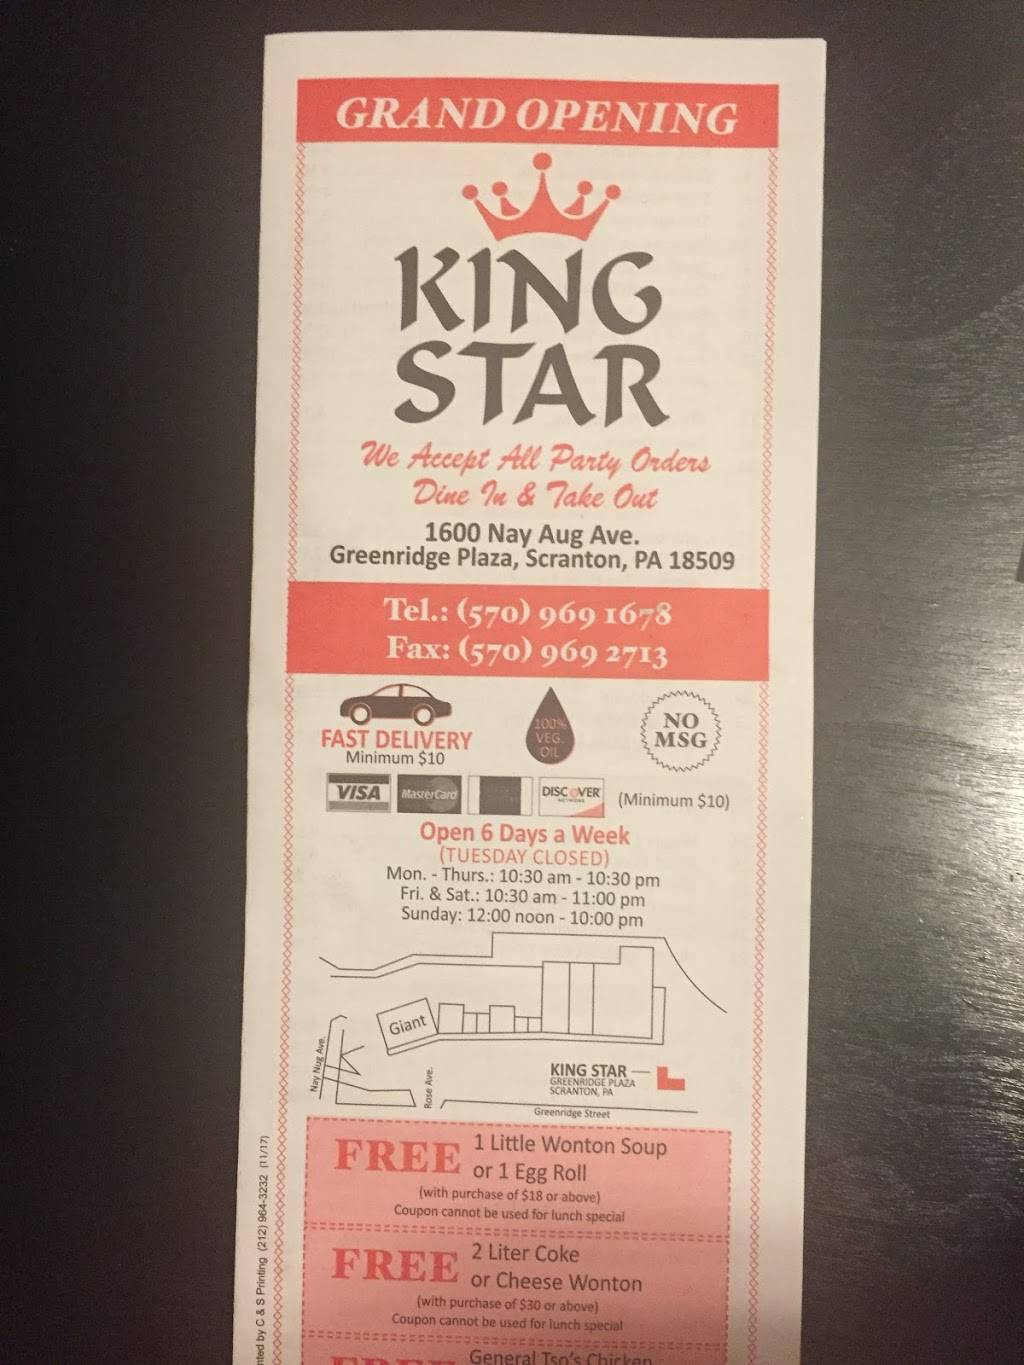 King star | meal delivery | 1600 Nay Aug Ave, Scranton, PA 18509, USA | 5709691678 OR +1 570-969-1678